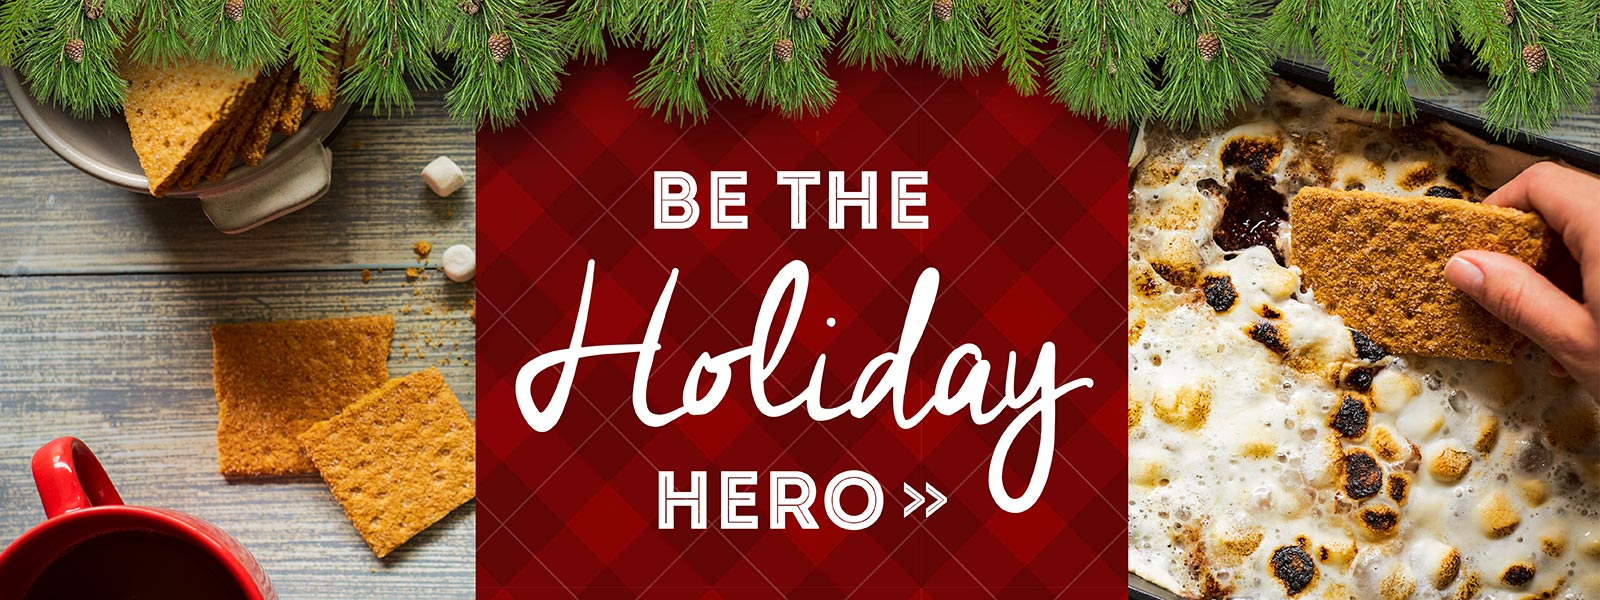 Be the Holiday Hero